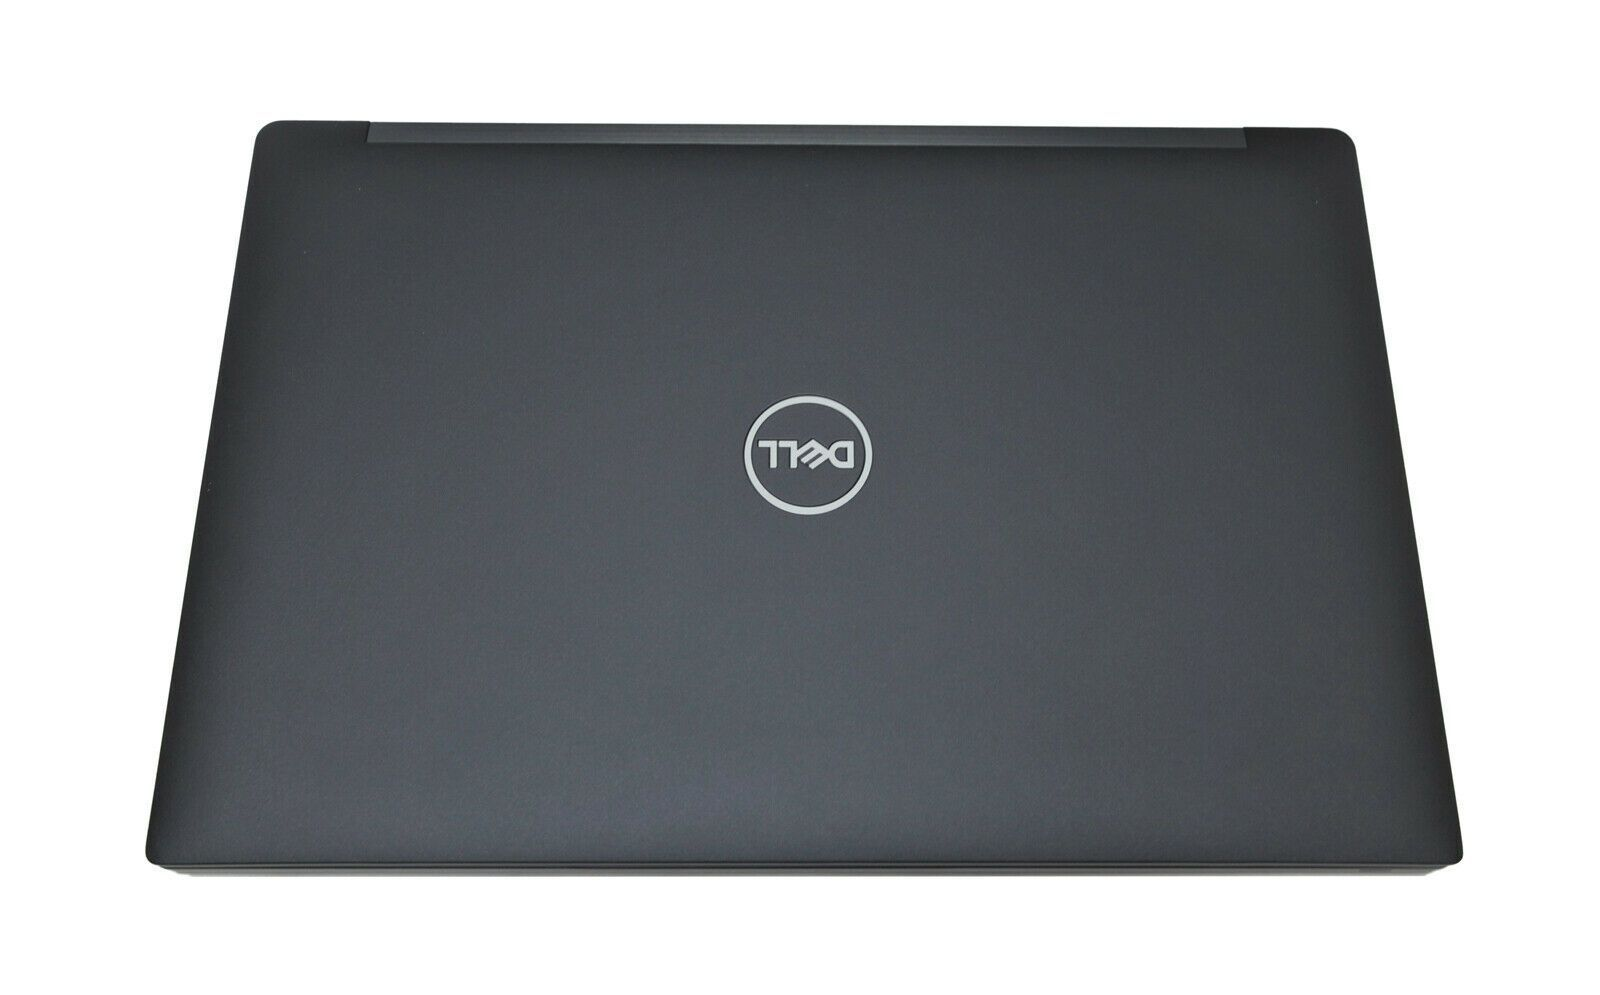 Dell Latitude 7490 IPS Ultrabook: Core i7-8650U upto 4.2Ghz, 16GB RAM, 256GB - CruiseTech